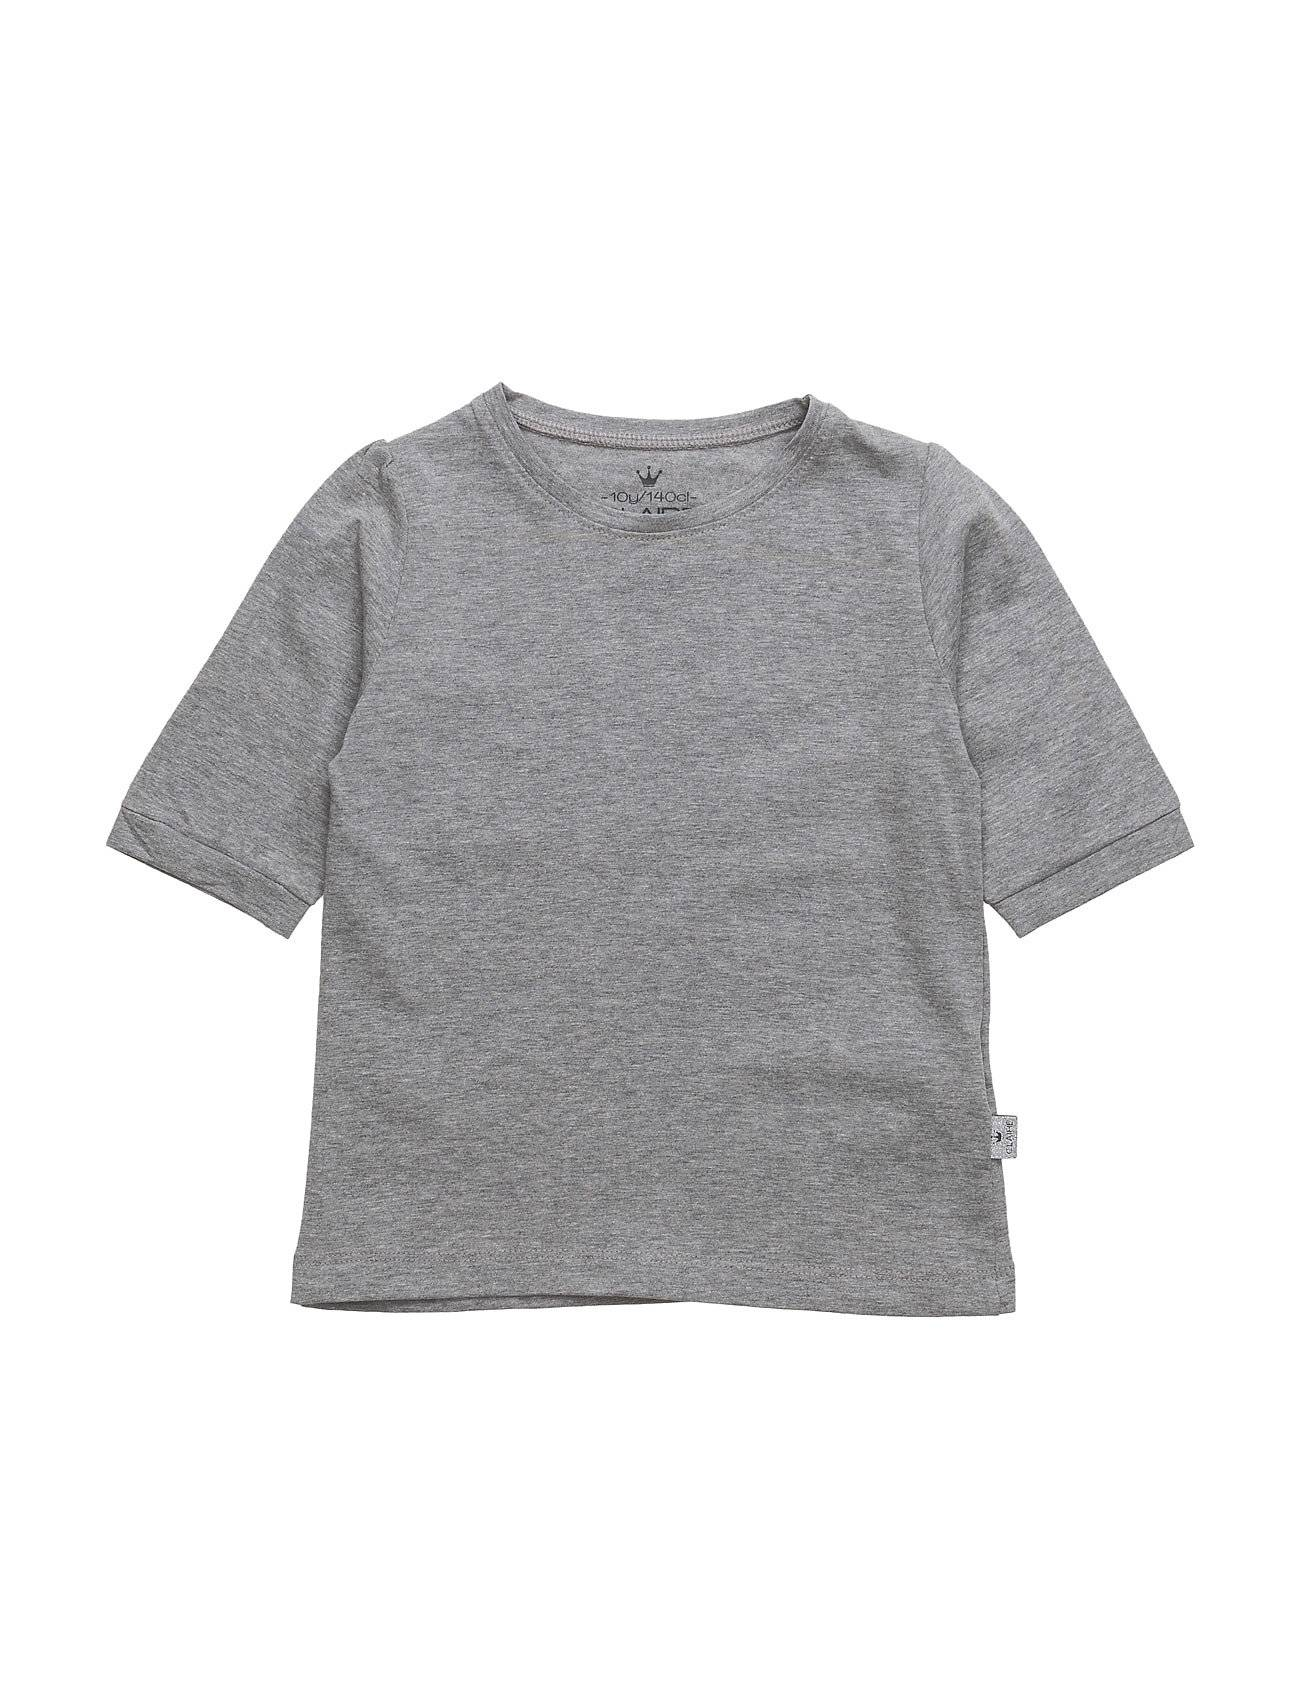 Hust & Claire T-Shirt T-shirts Short-sleeved Harmaa Hust & Claire